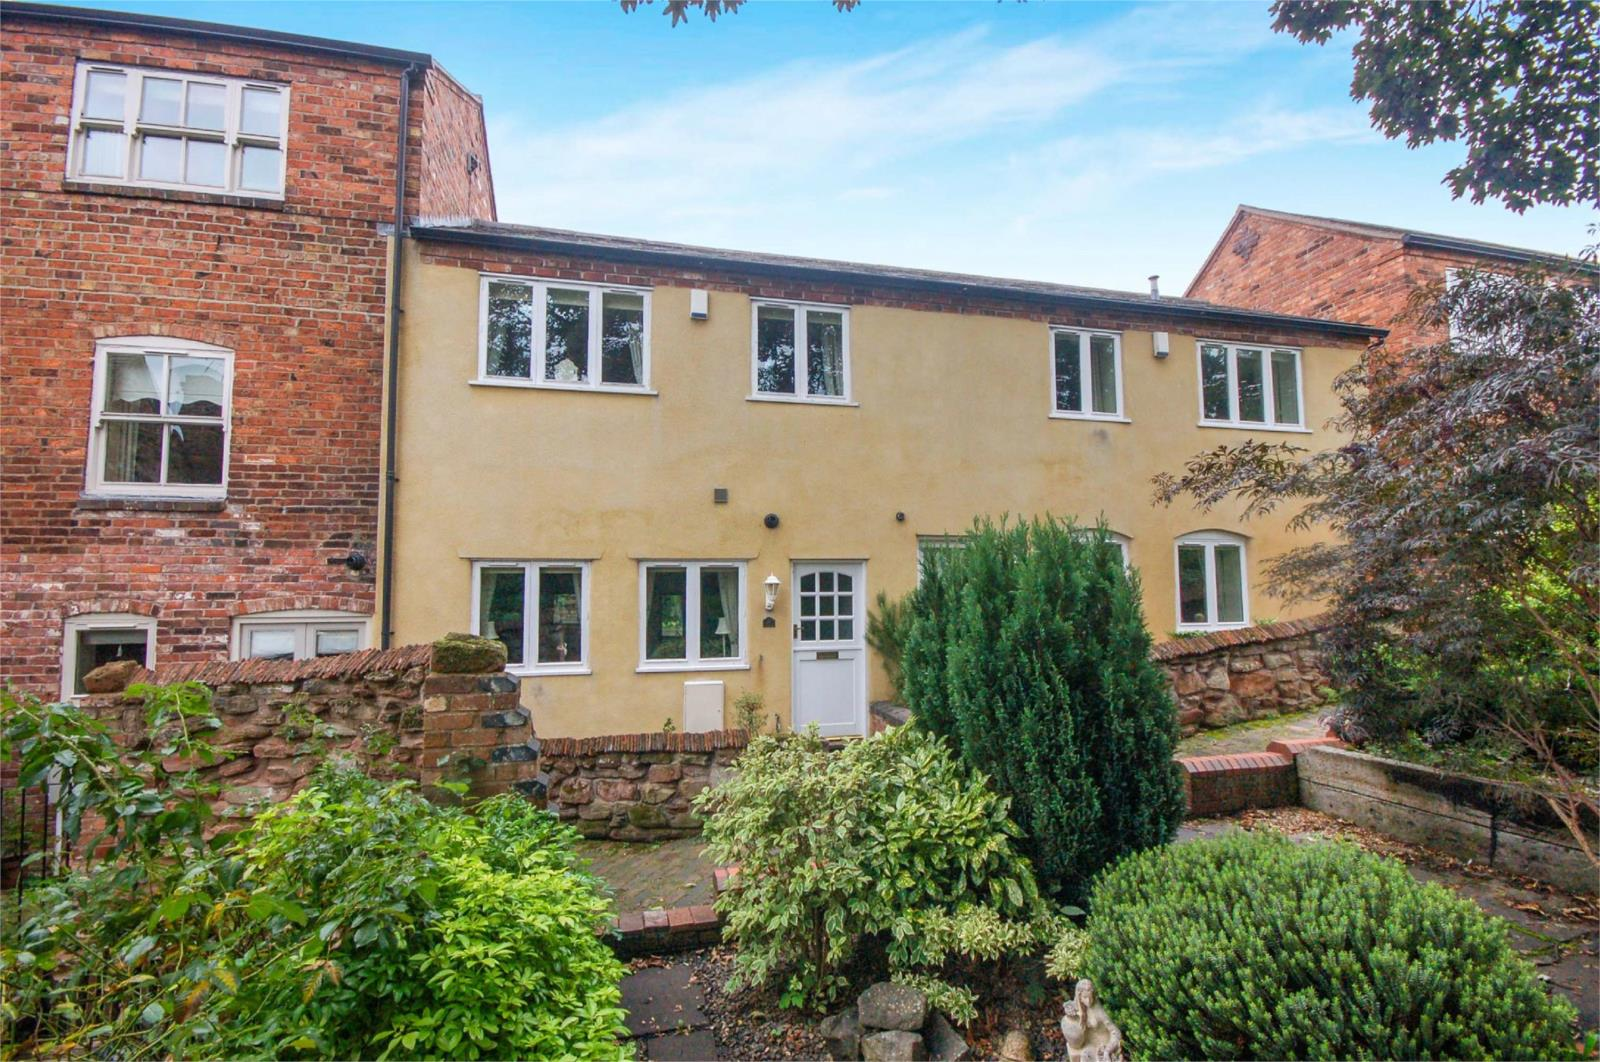 2 Bedrooms Terraced House for sale in 6 The Shambles, Bridgnorth, Shropshire, WV16